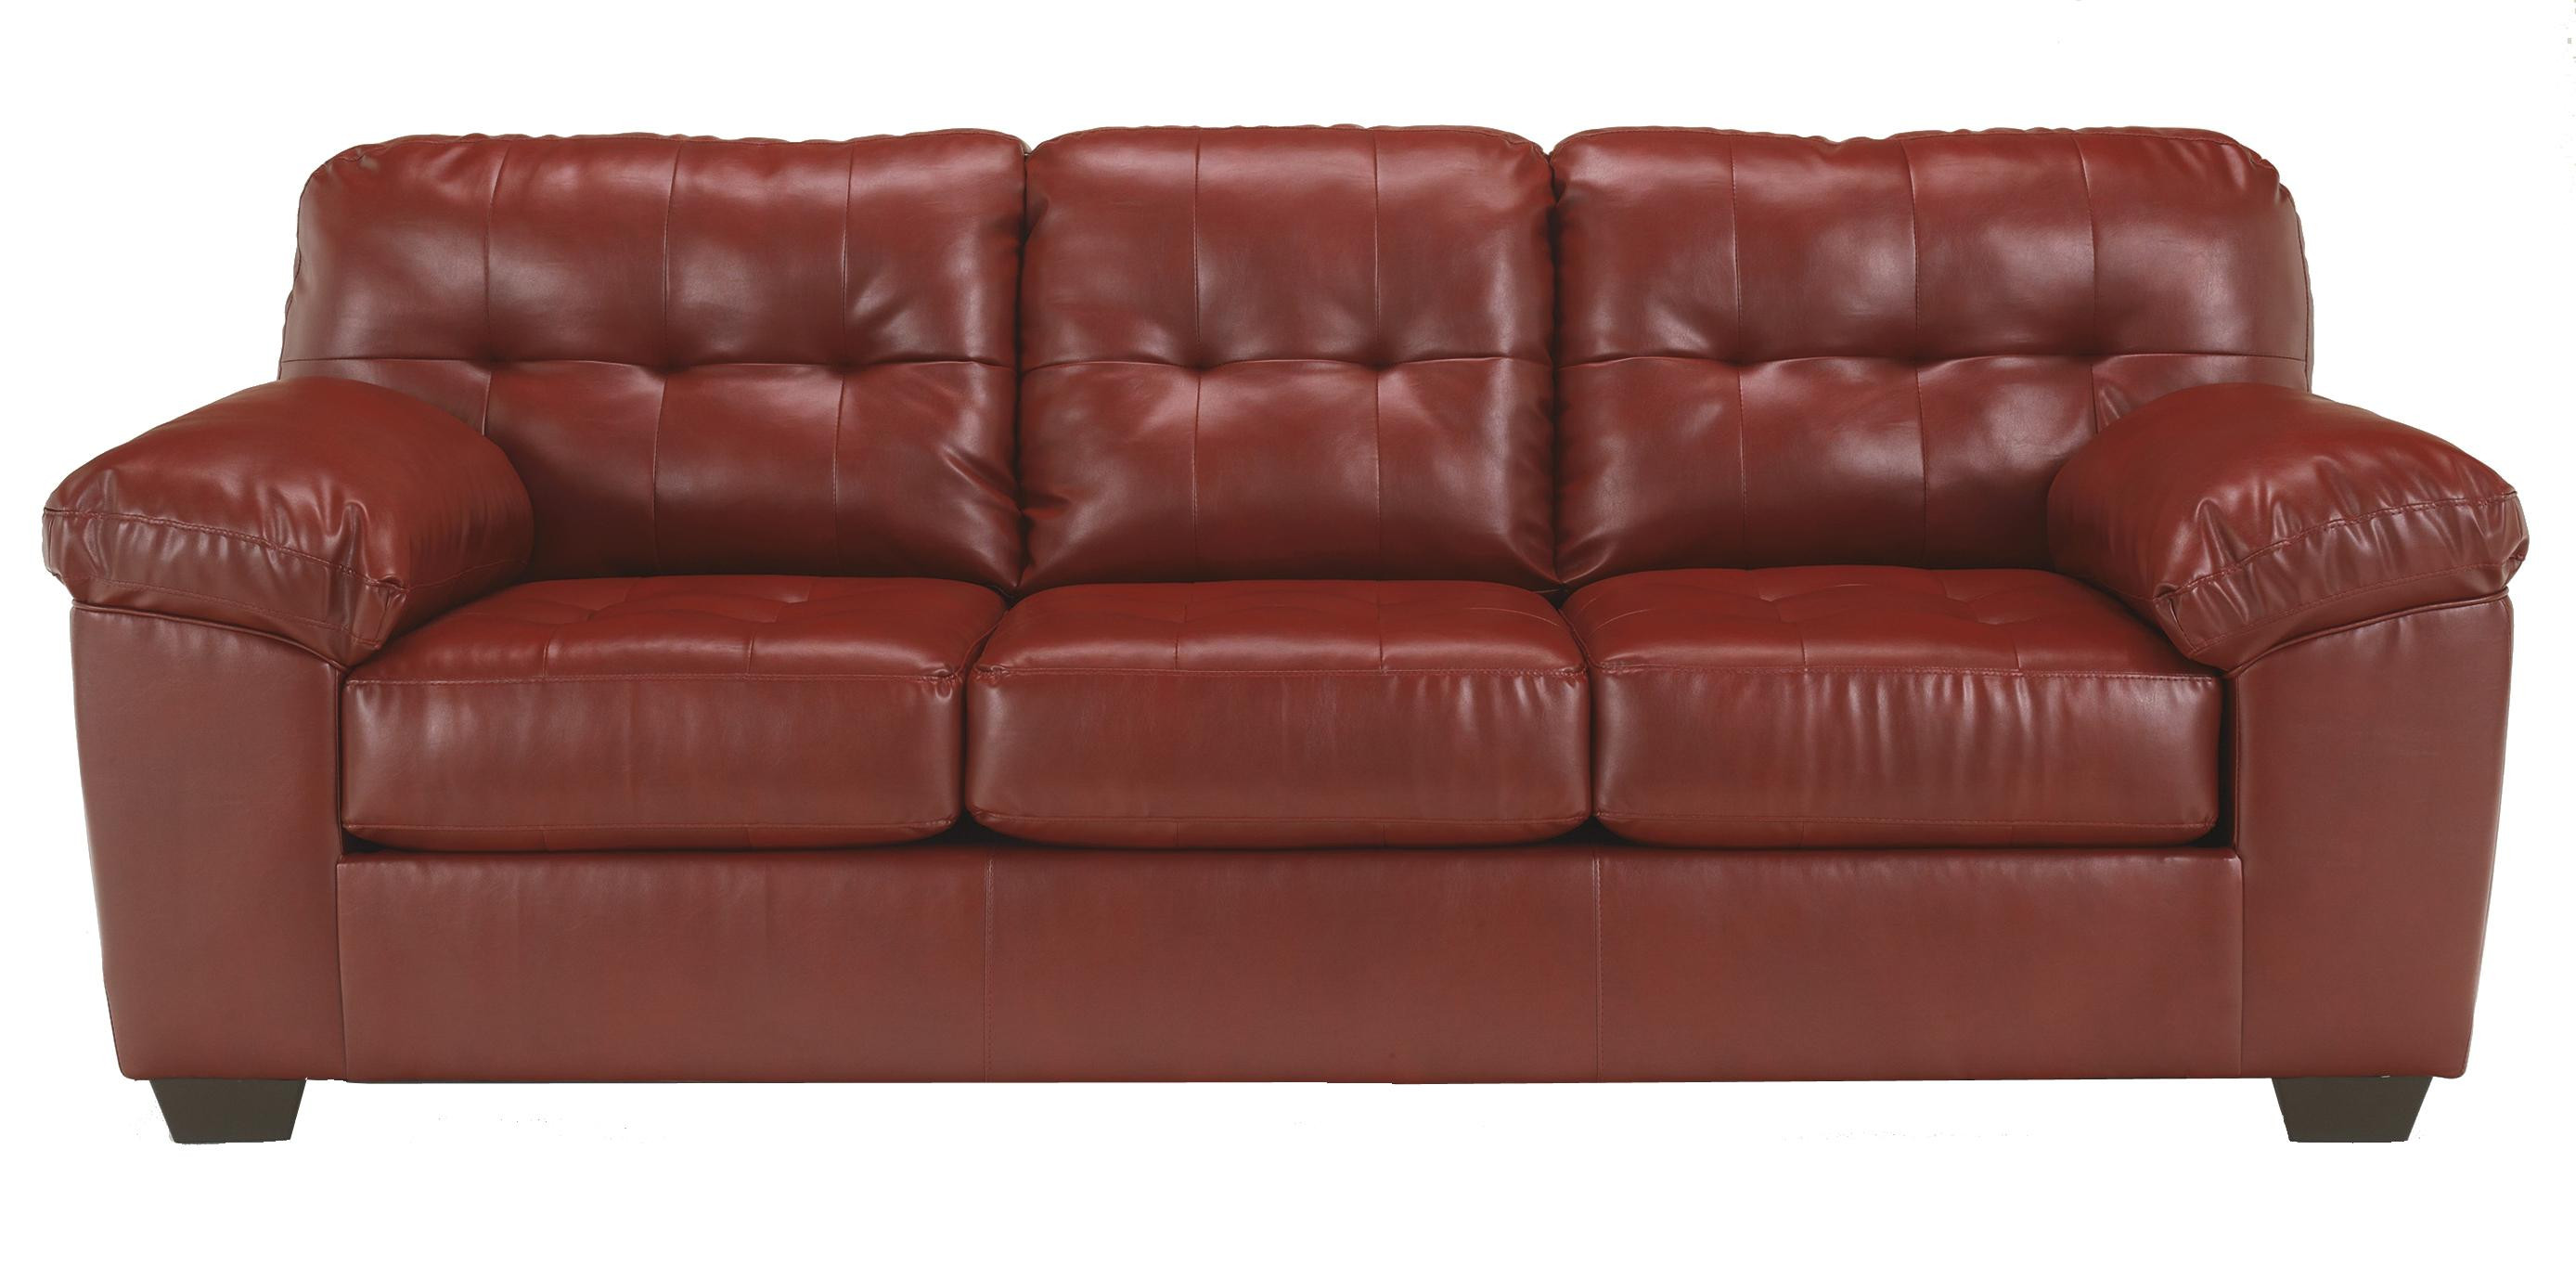 Best ideas about Leather Sofa Sleeper . Save or Pin Queen Faux Leather Sofa Sleeper w Tufting by Signature Now.